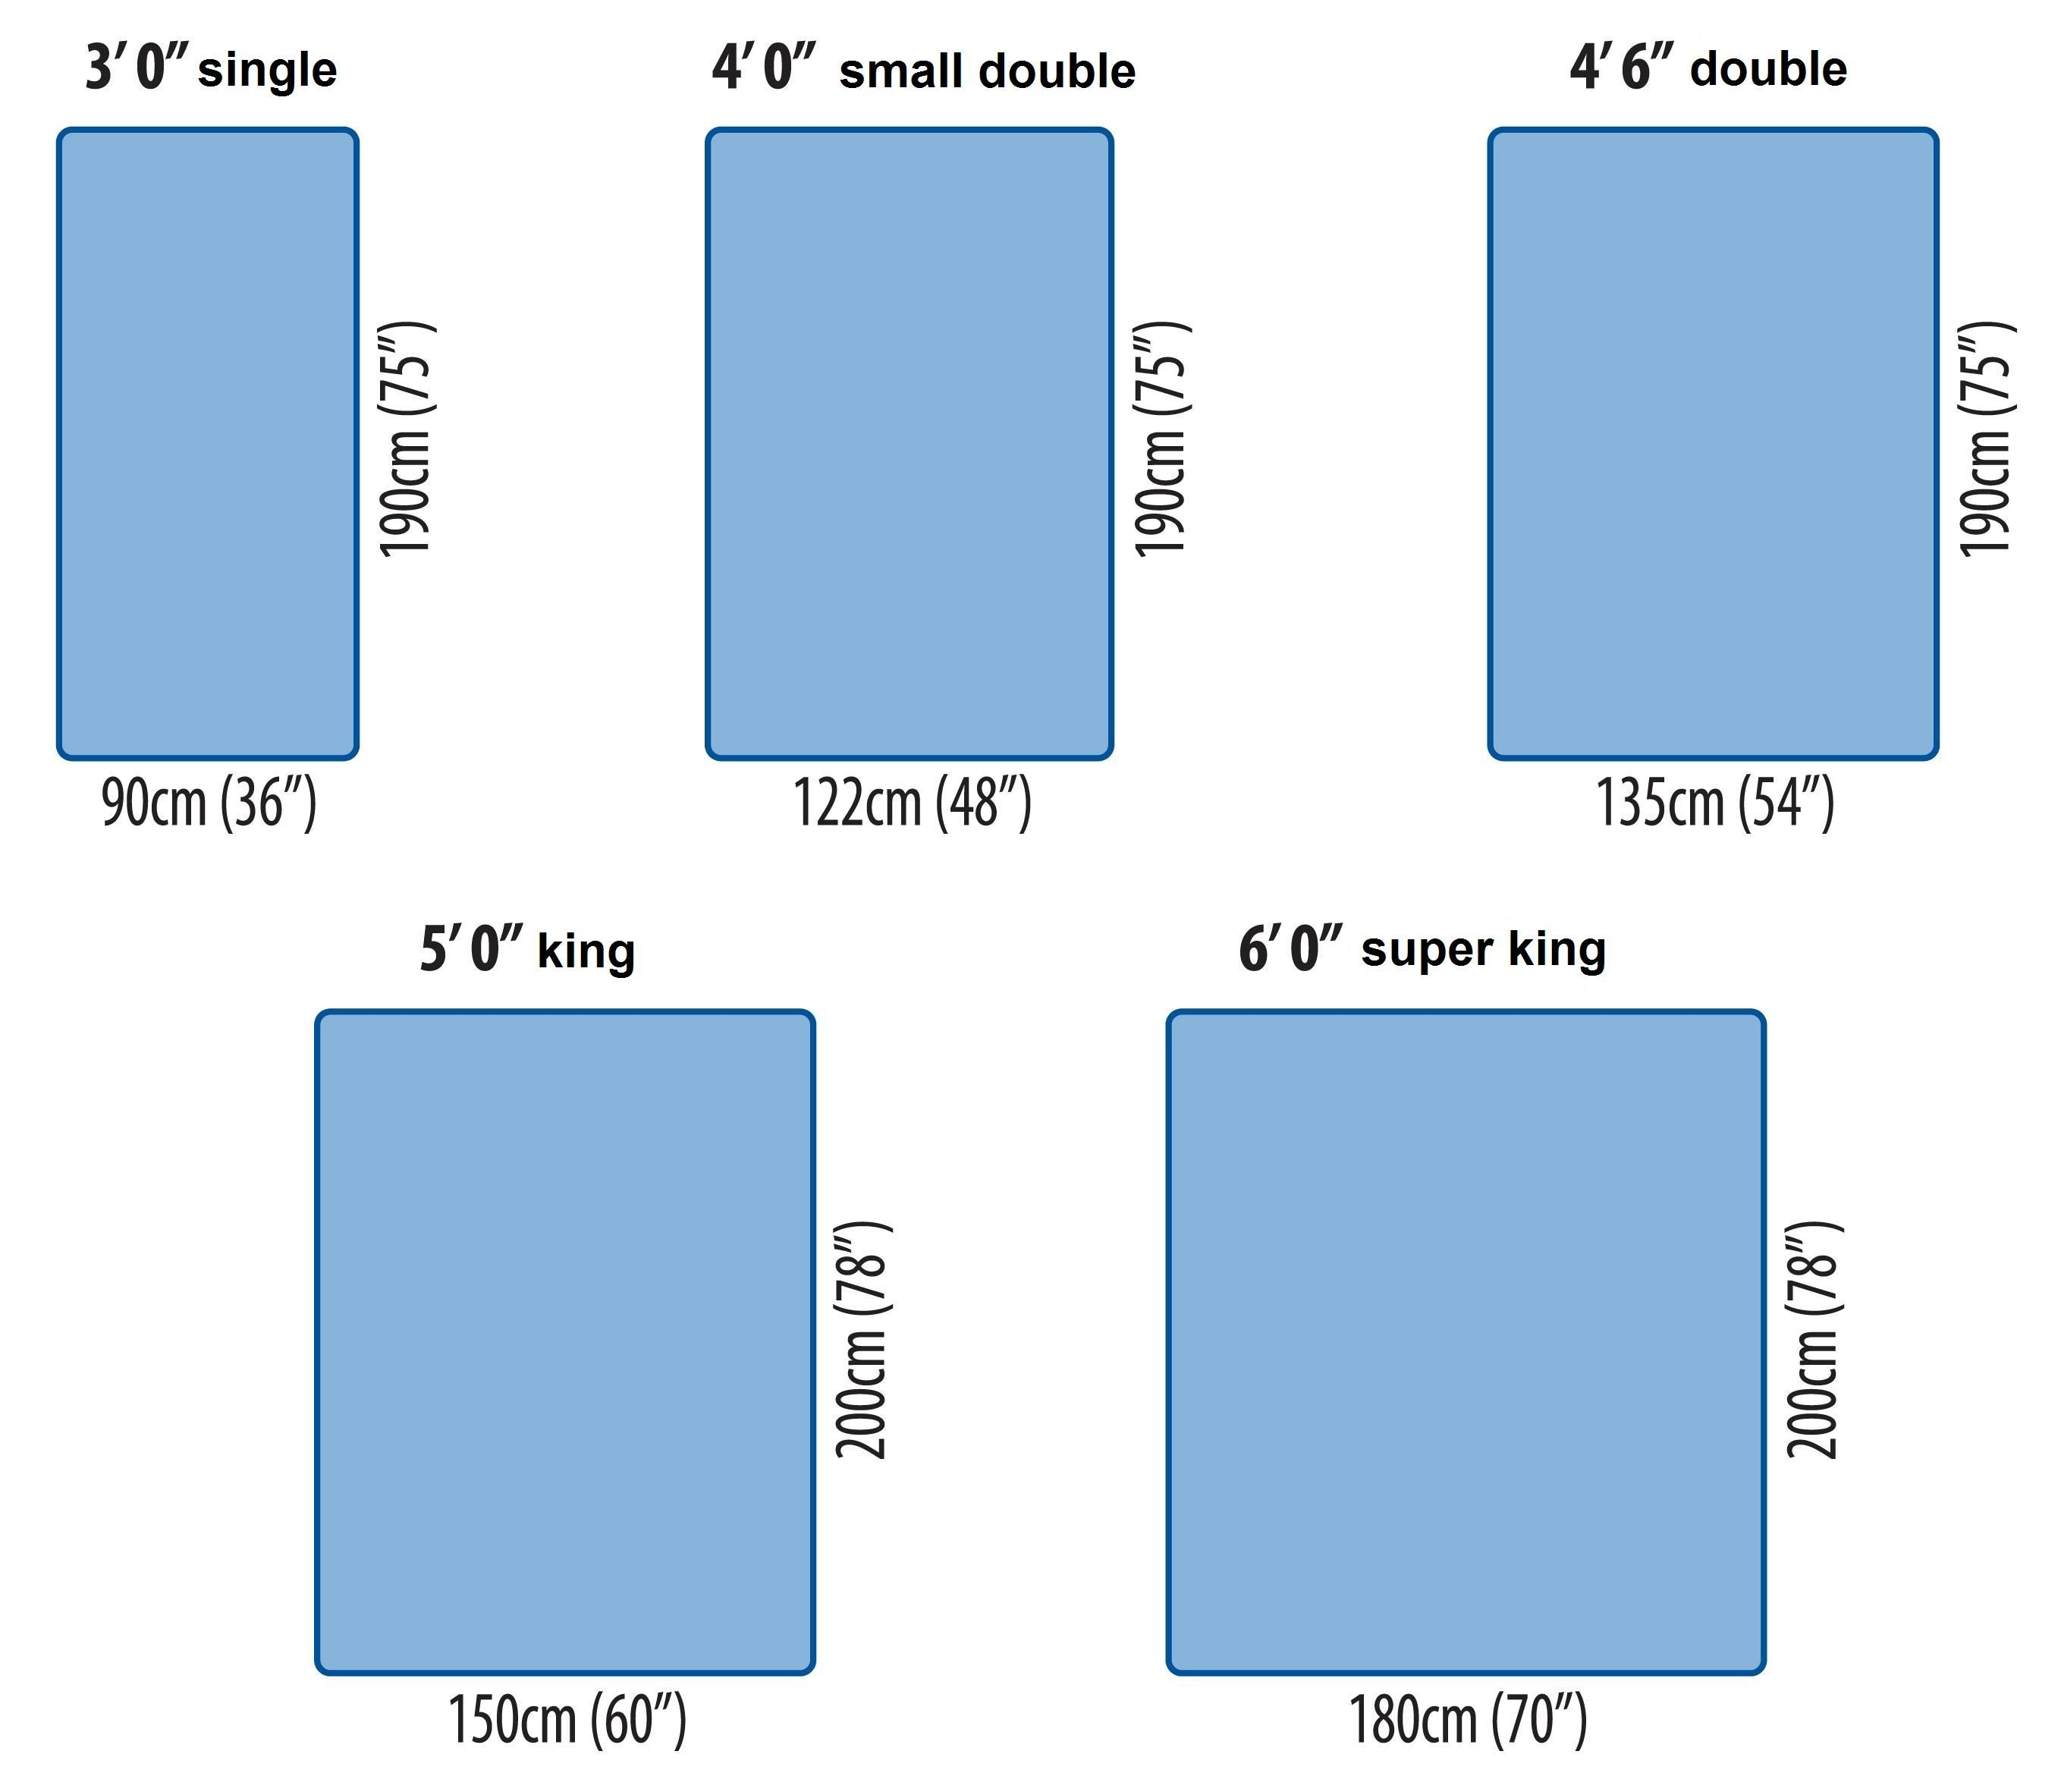 Bed sizes are confusing bed sizes confused and bedrooms Bed sizes